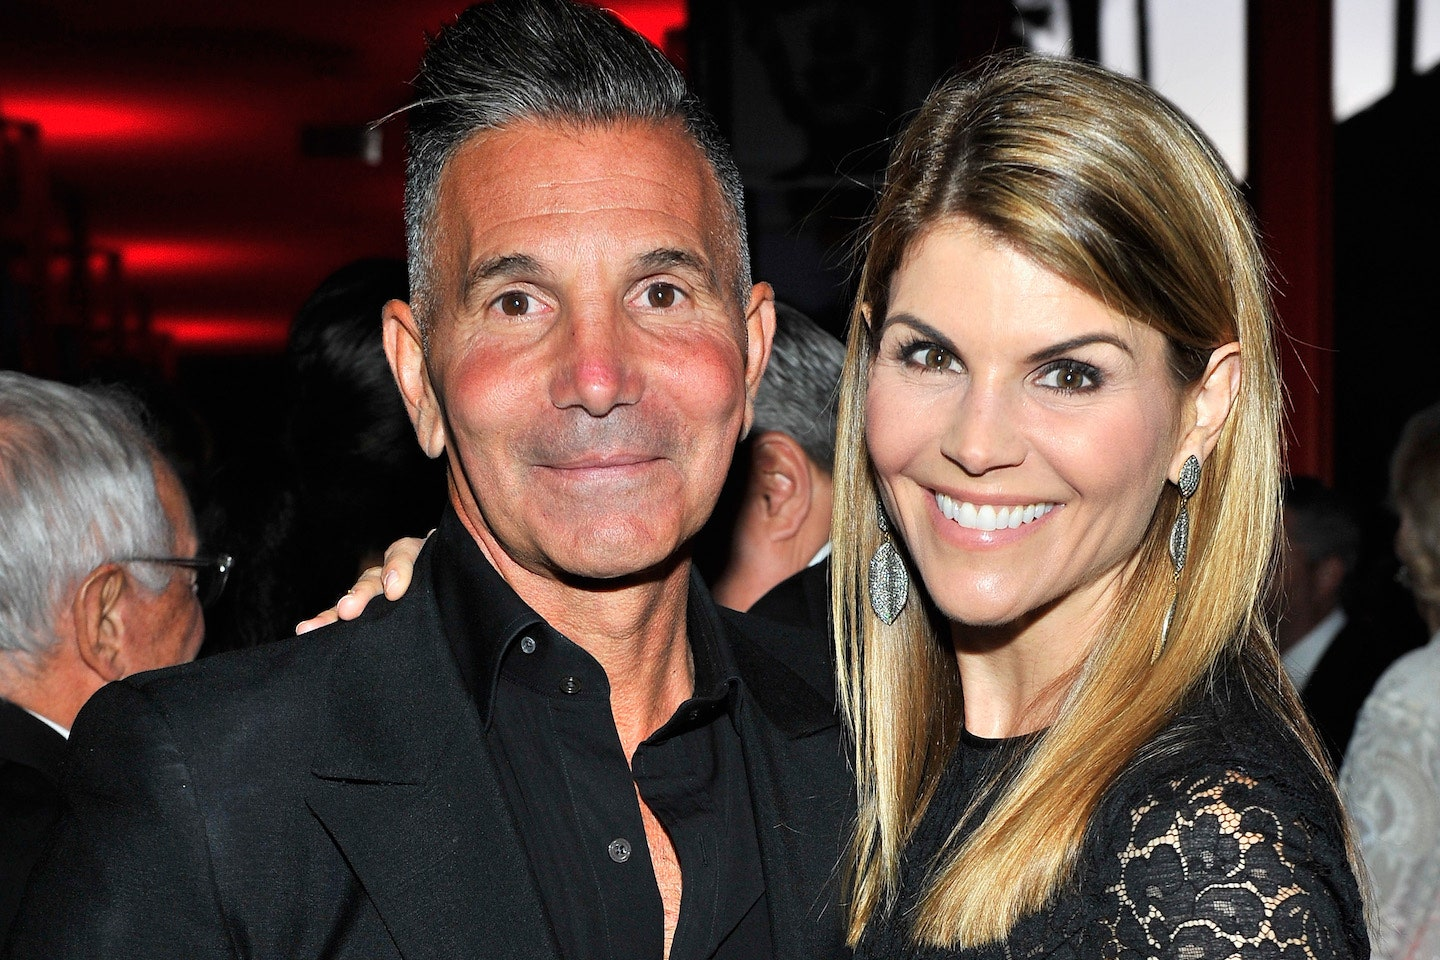 lori-loughlins-husband-no-longer-behind-bars-currently-under-home-confinement